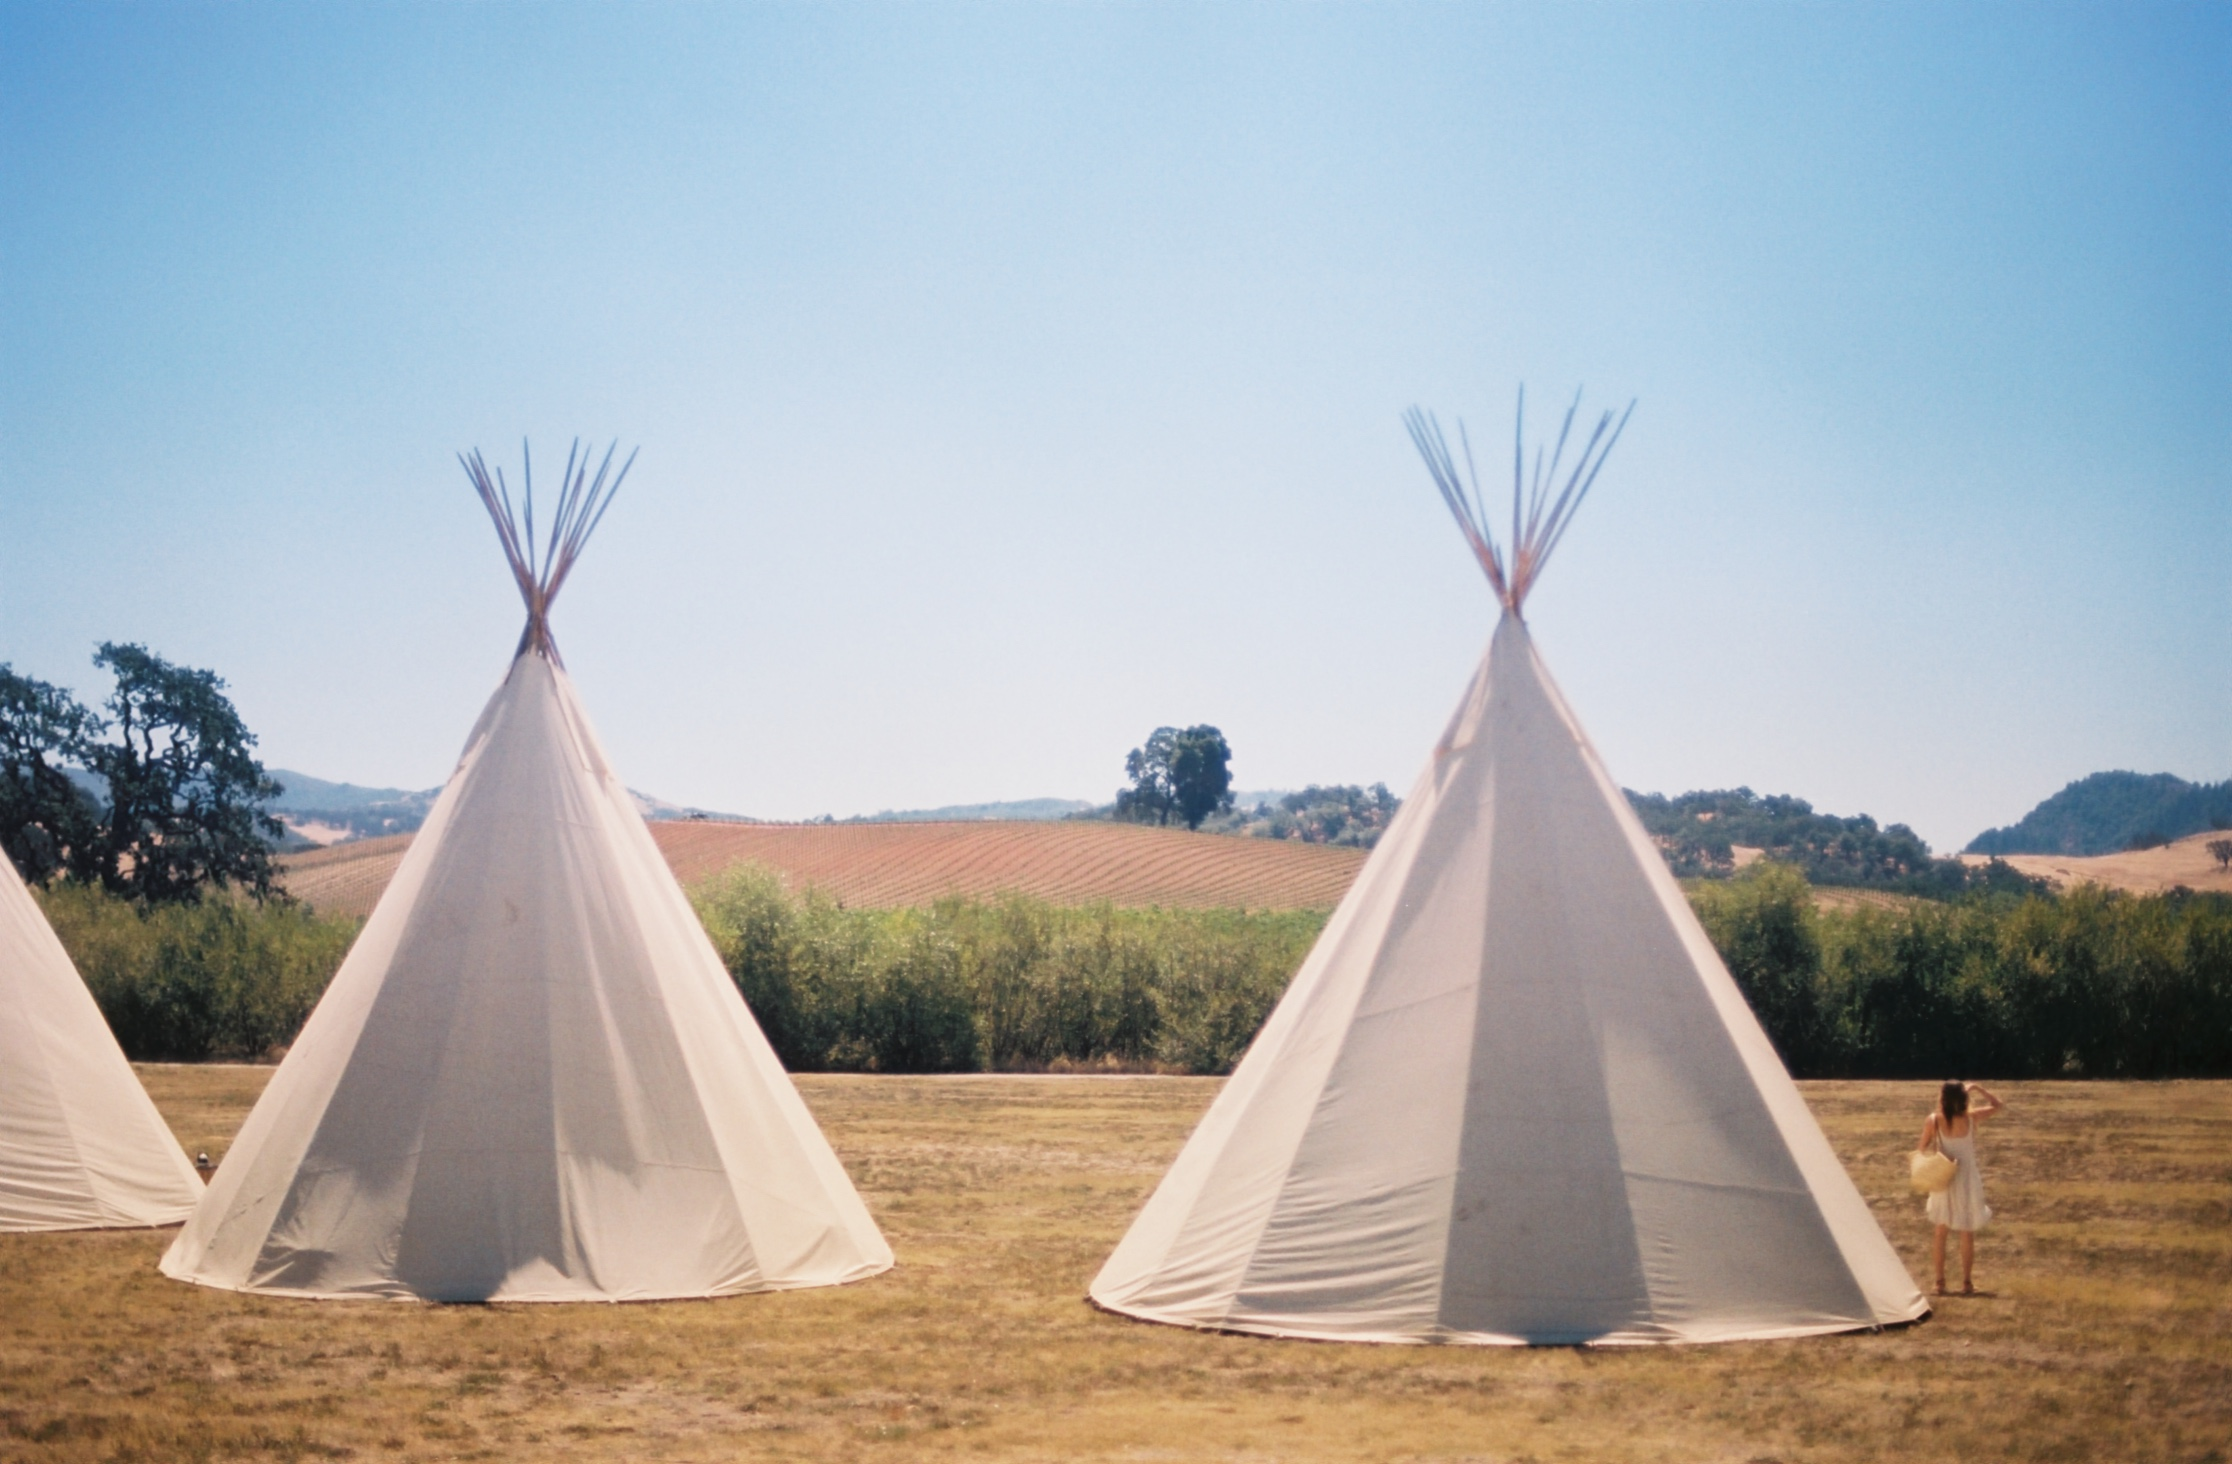 What's over there? - We slept in these magic Tipis every night. #35mm #film